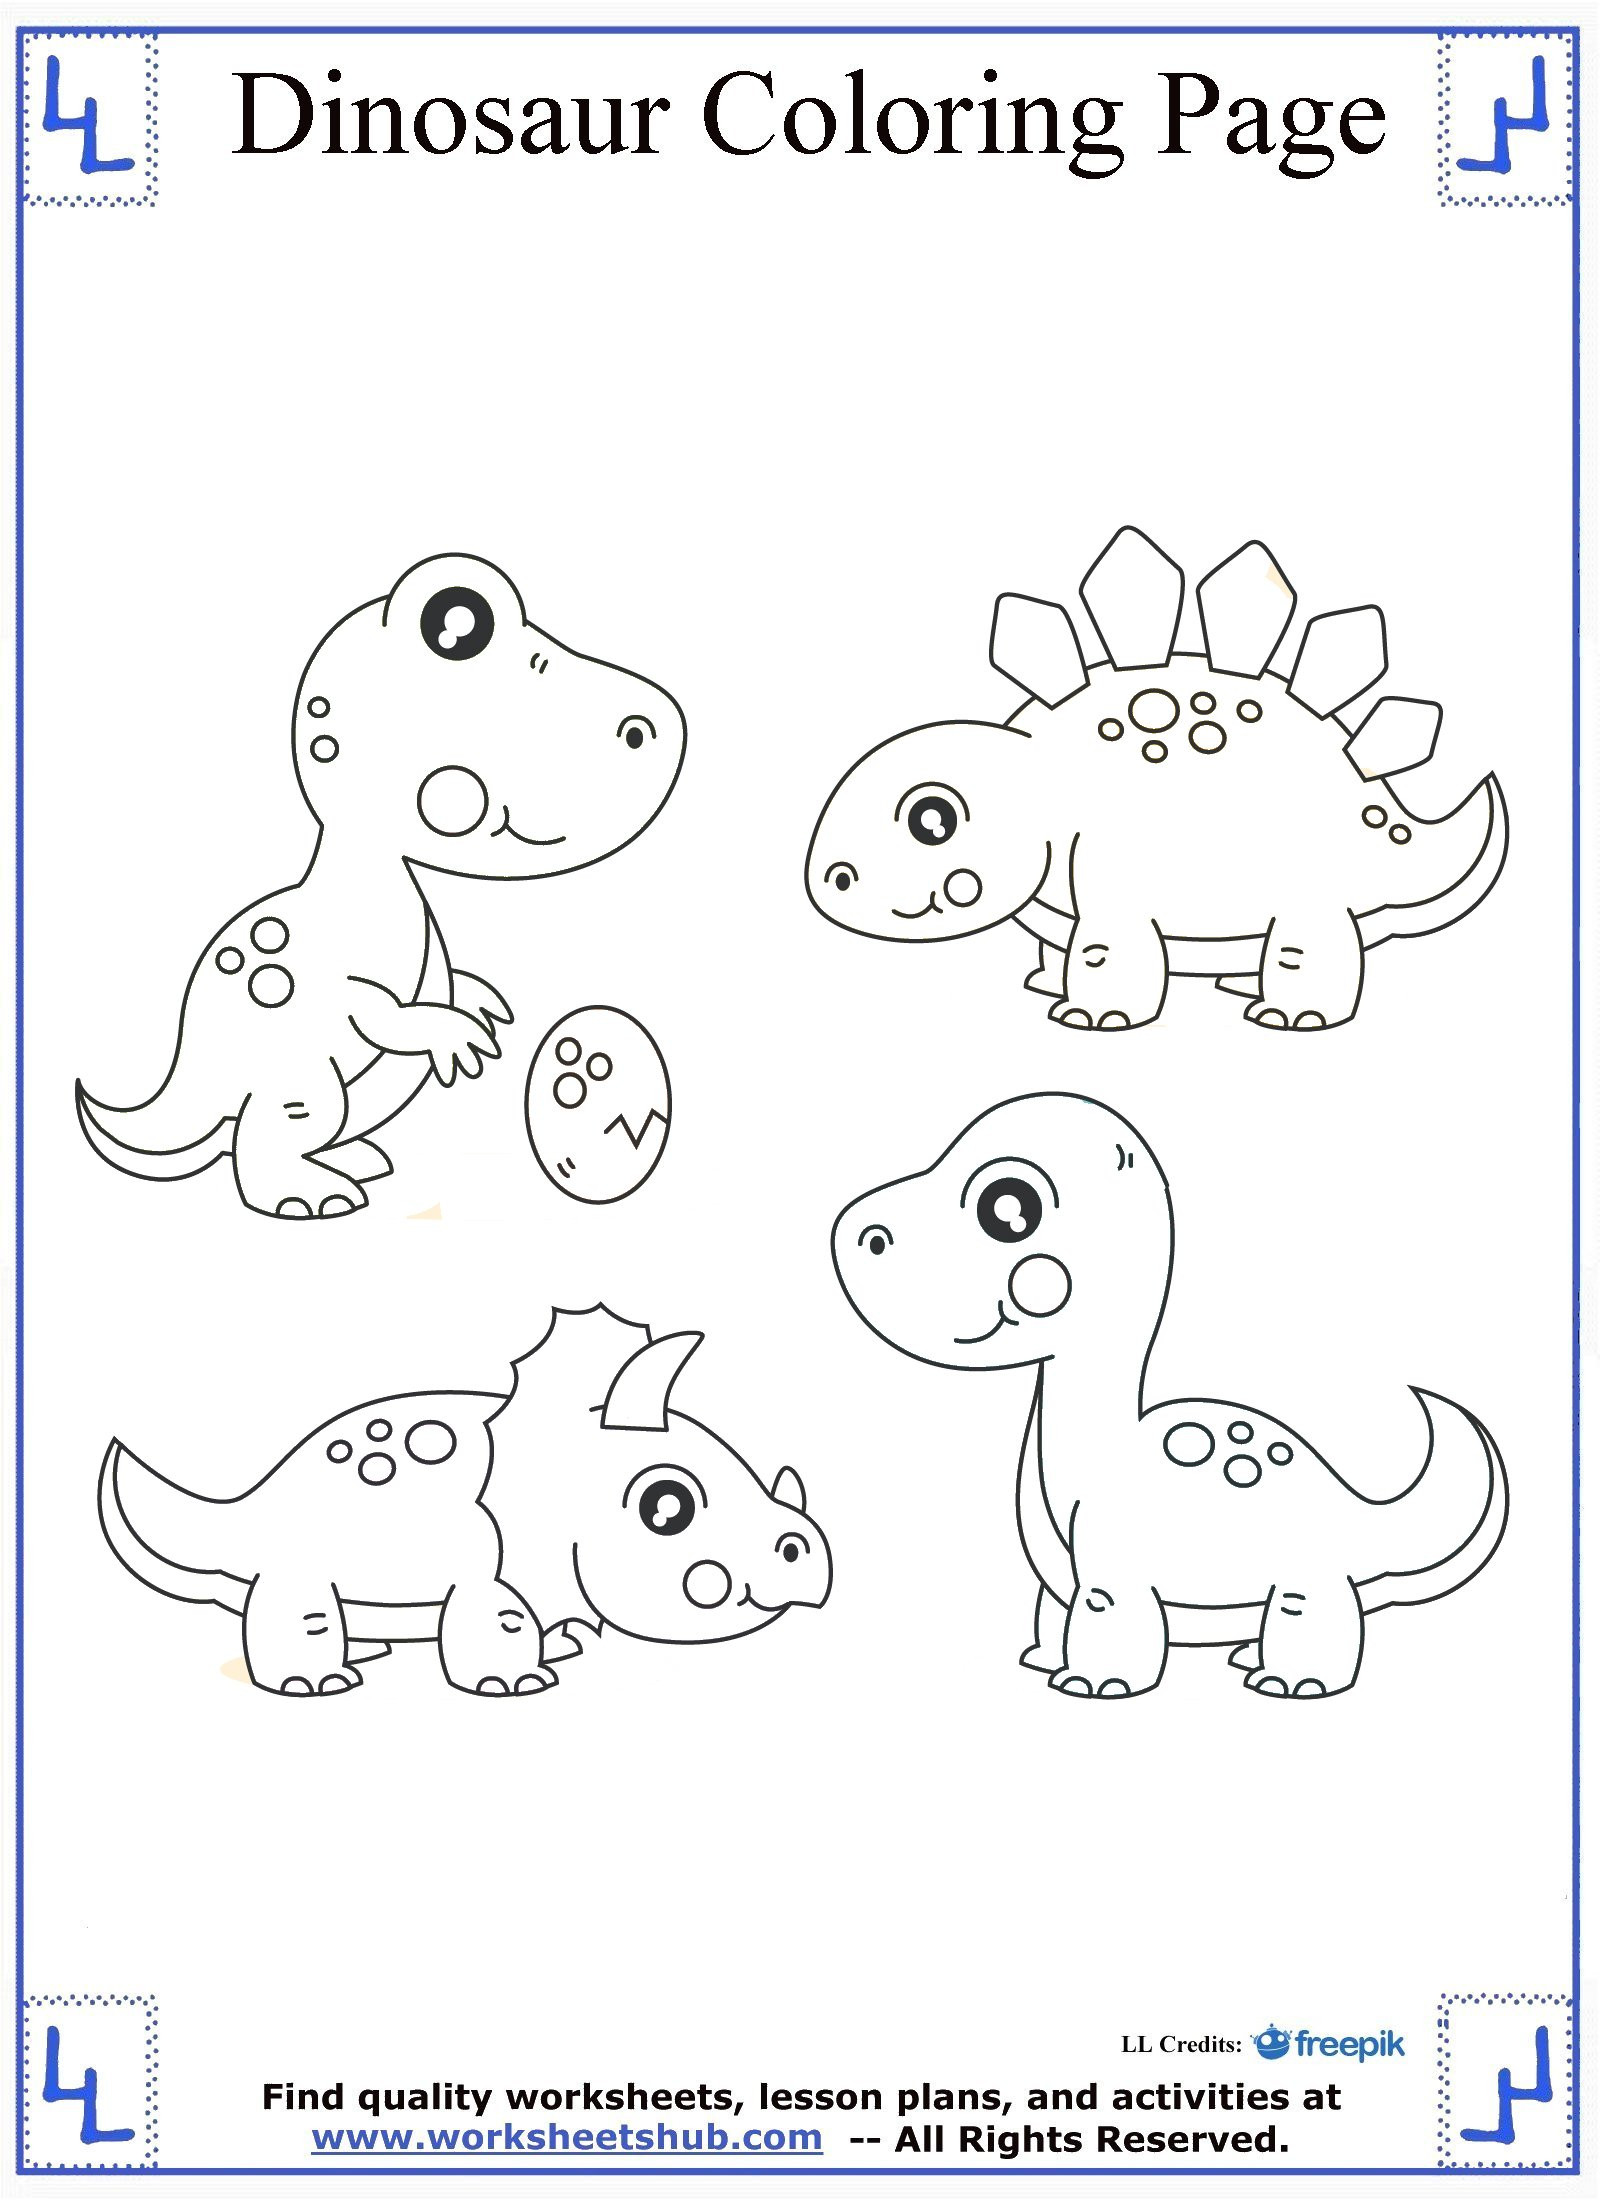 Dinosaur Worksheets for Preschoolers Dinosaur Color by Letter Preschool Worksheetsee Number